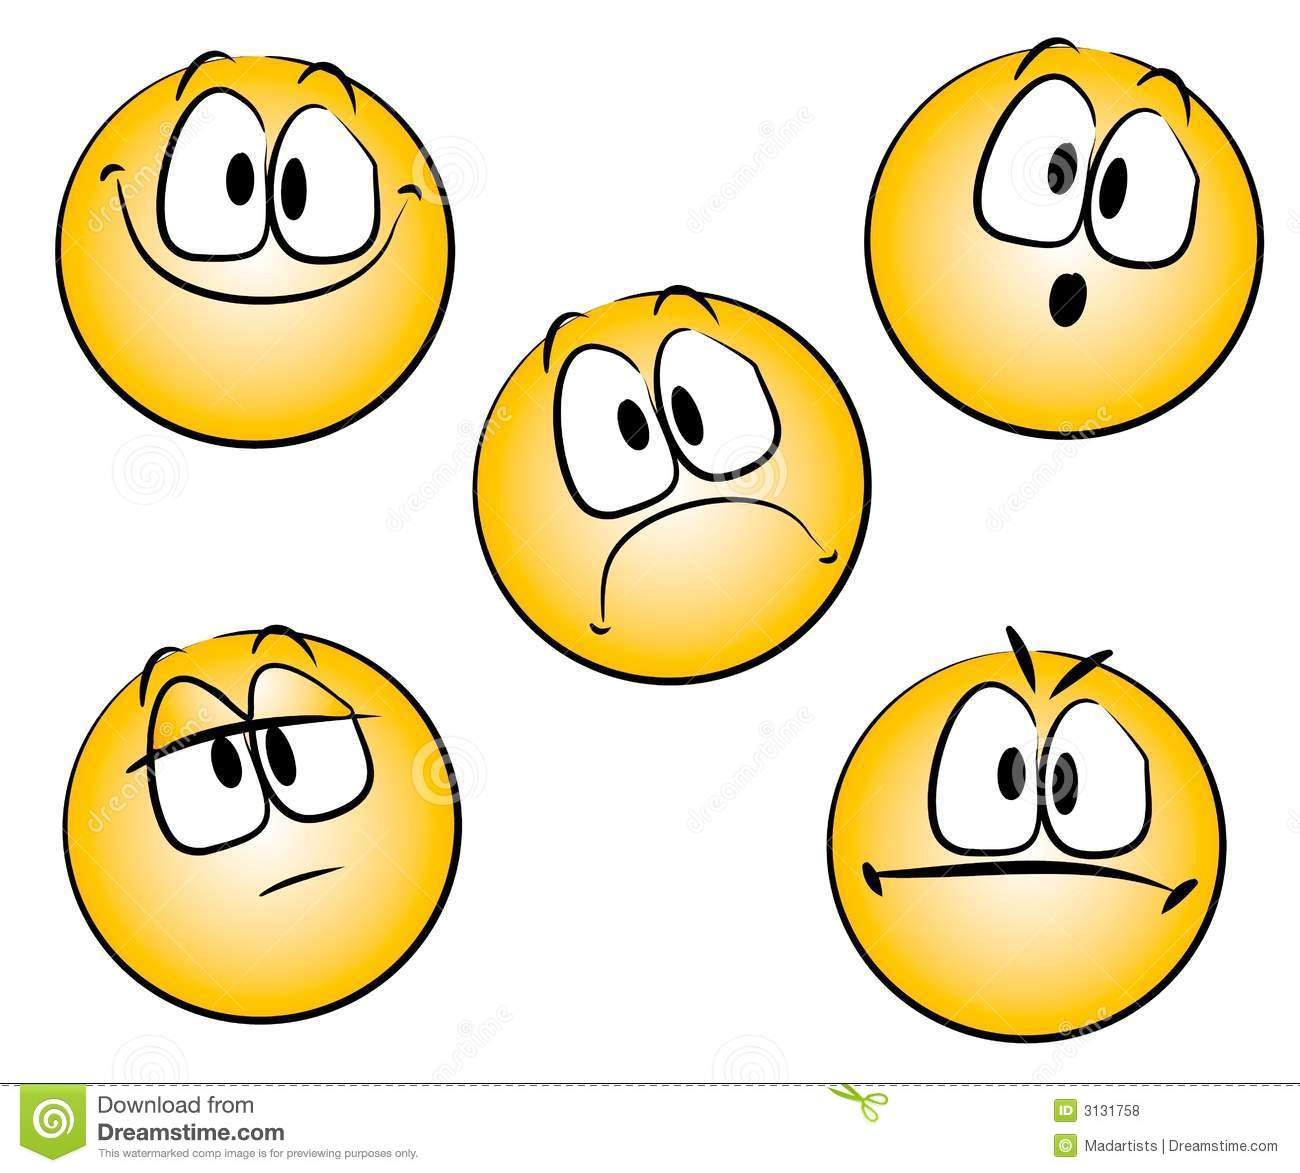 Emoticons Smileys Clip Art Royalty Free Stock Photos   Image  3131758